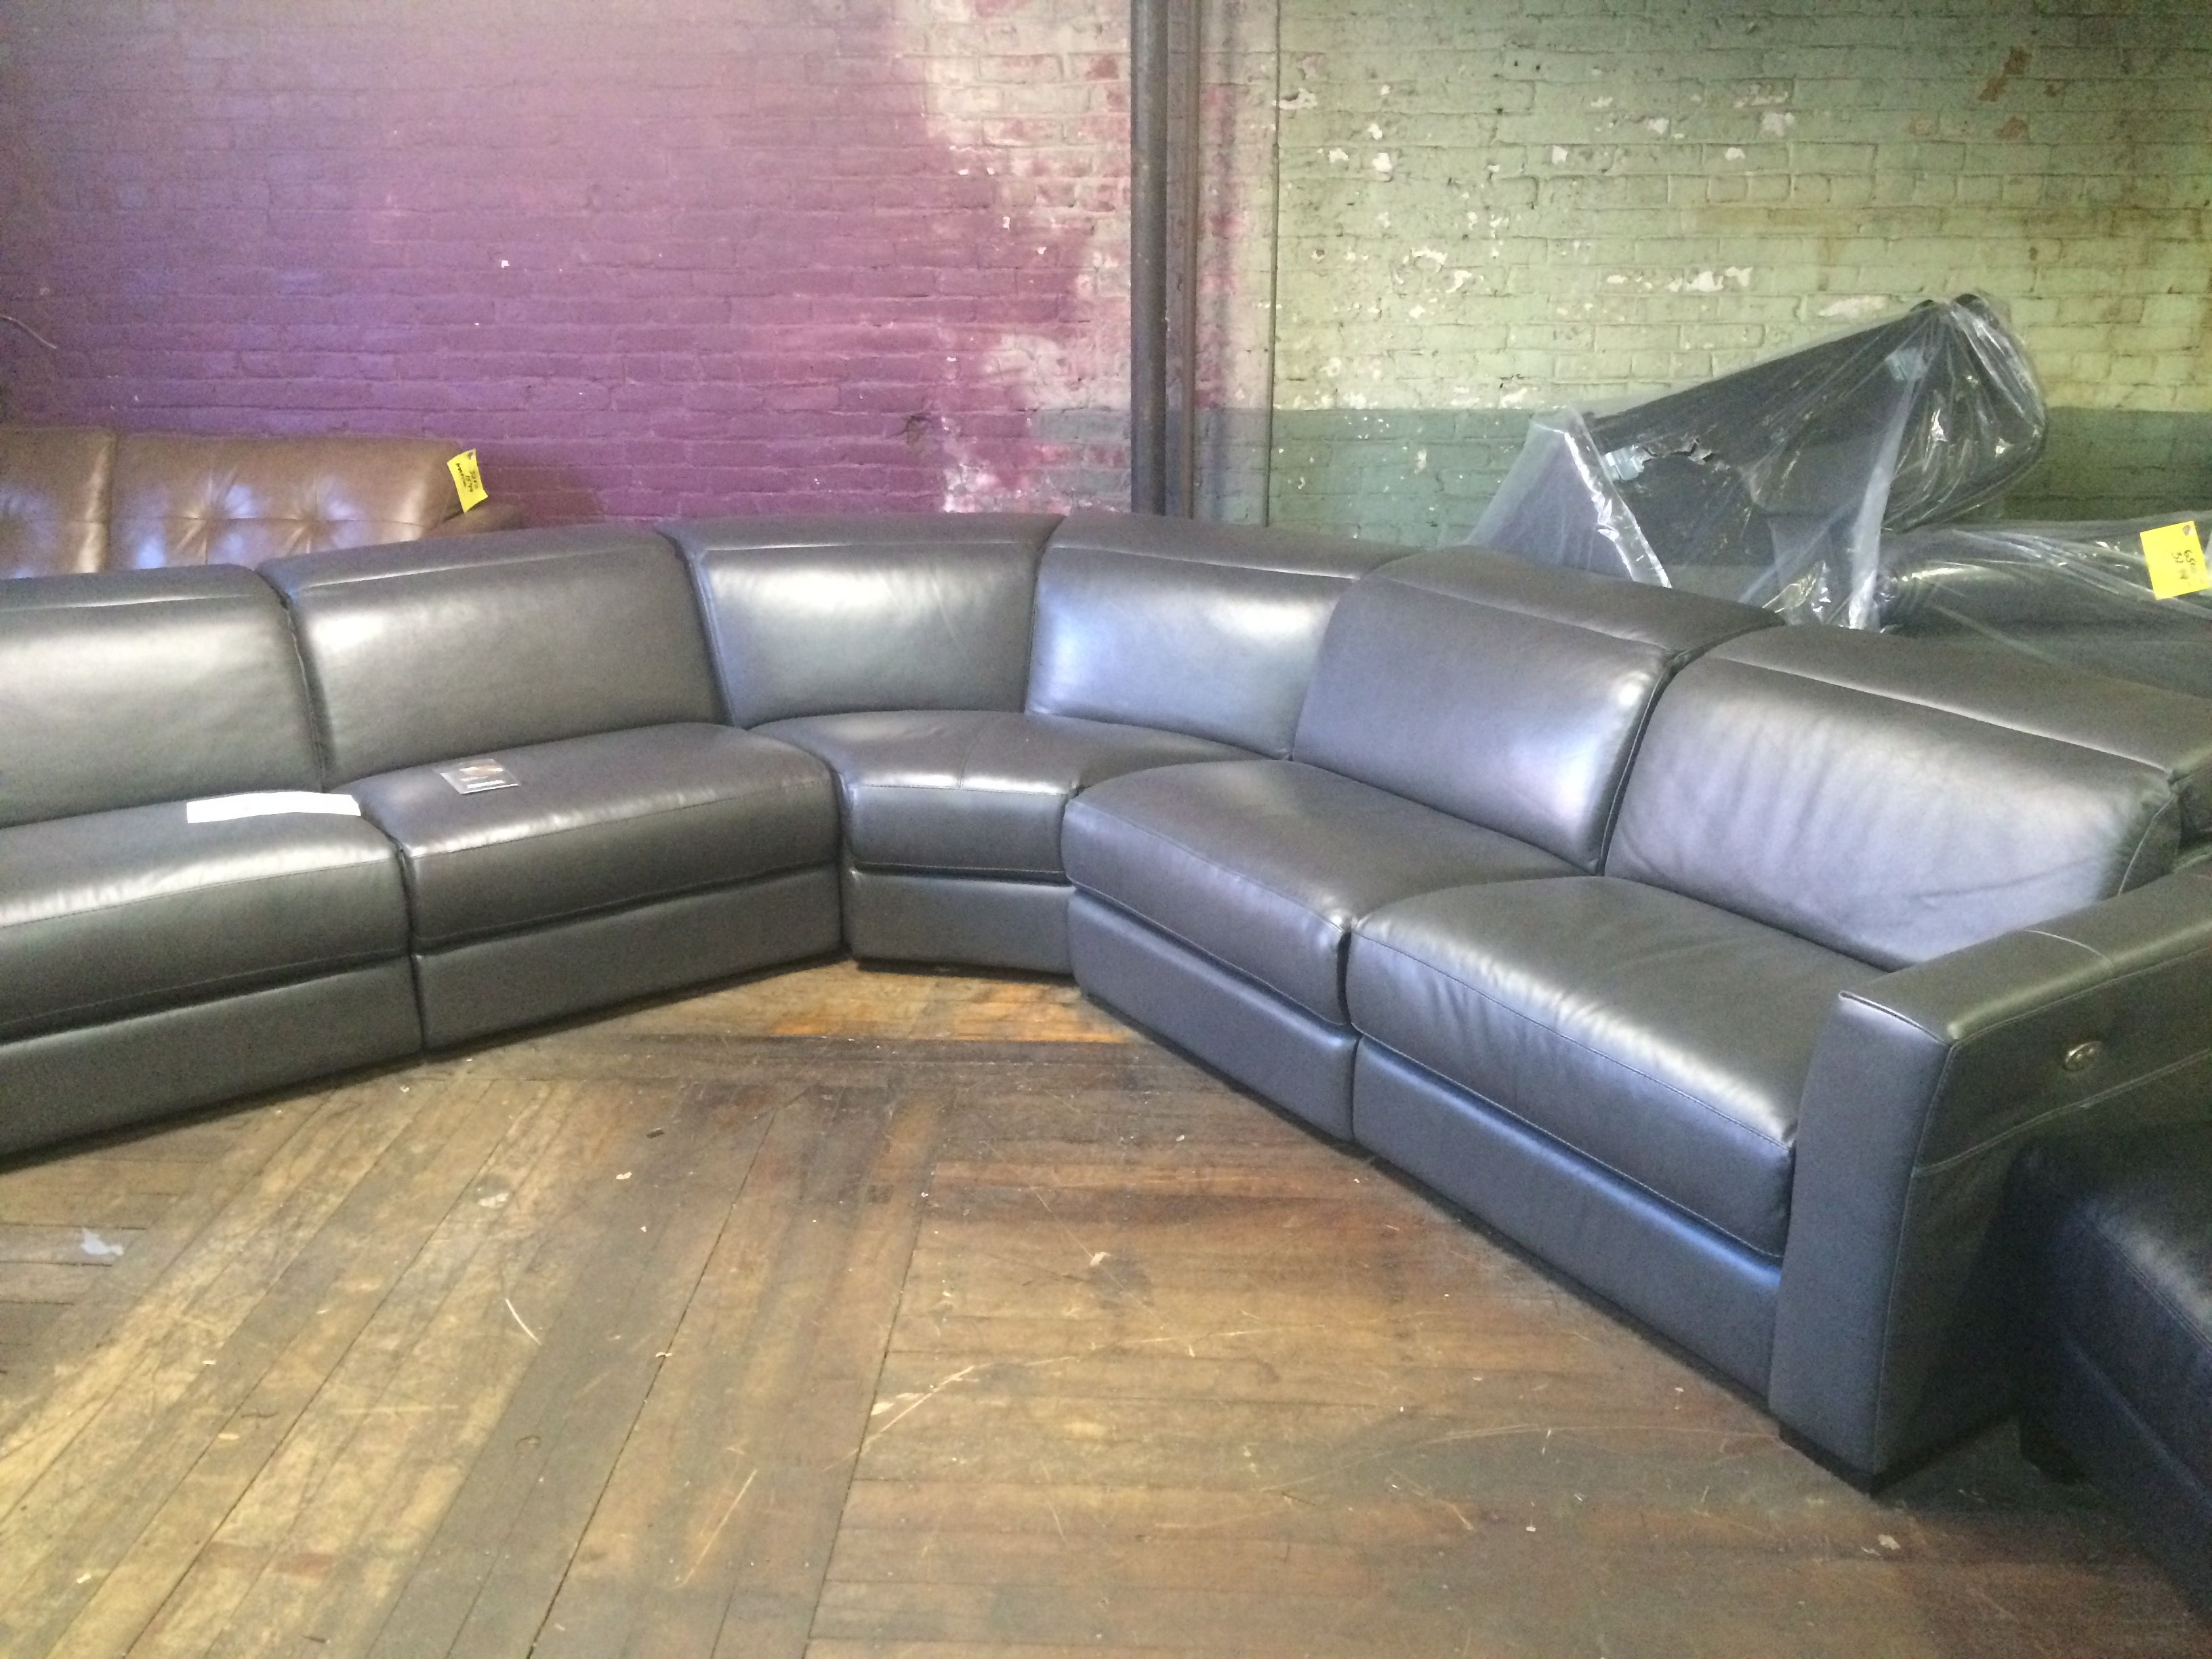 17 Best images about Leather Furniture Delas on Pinterest